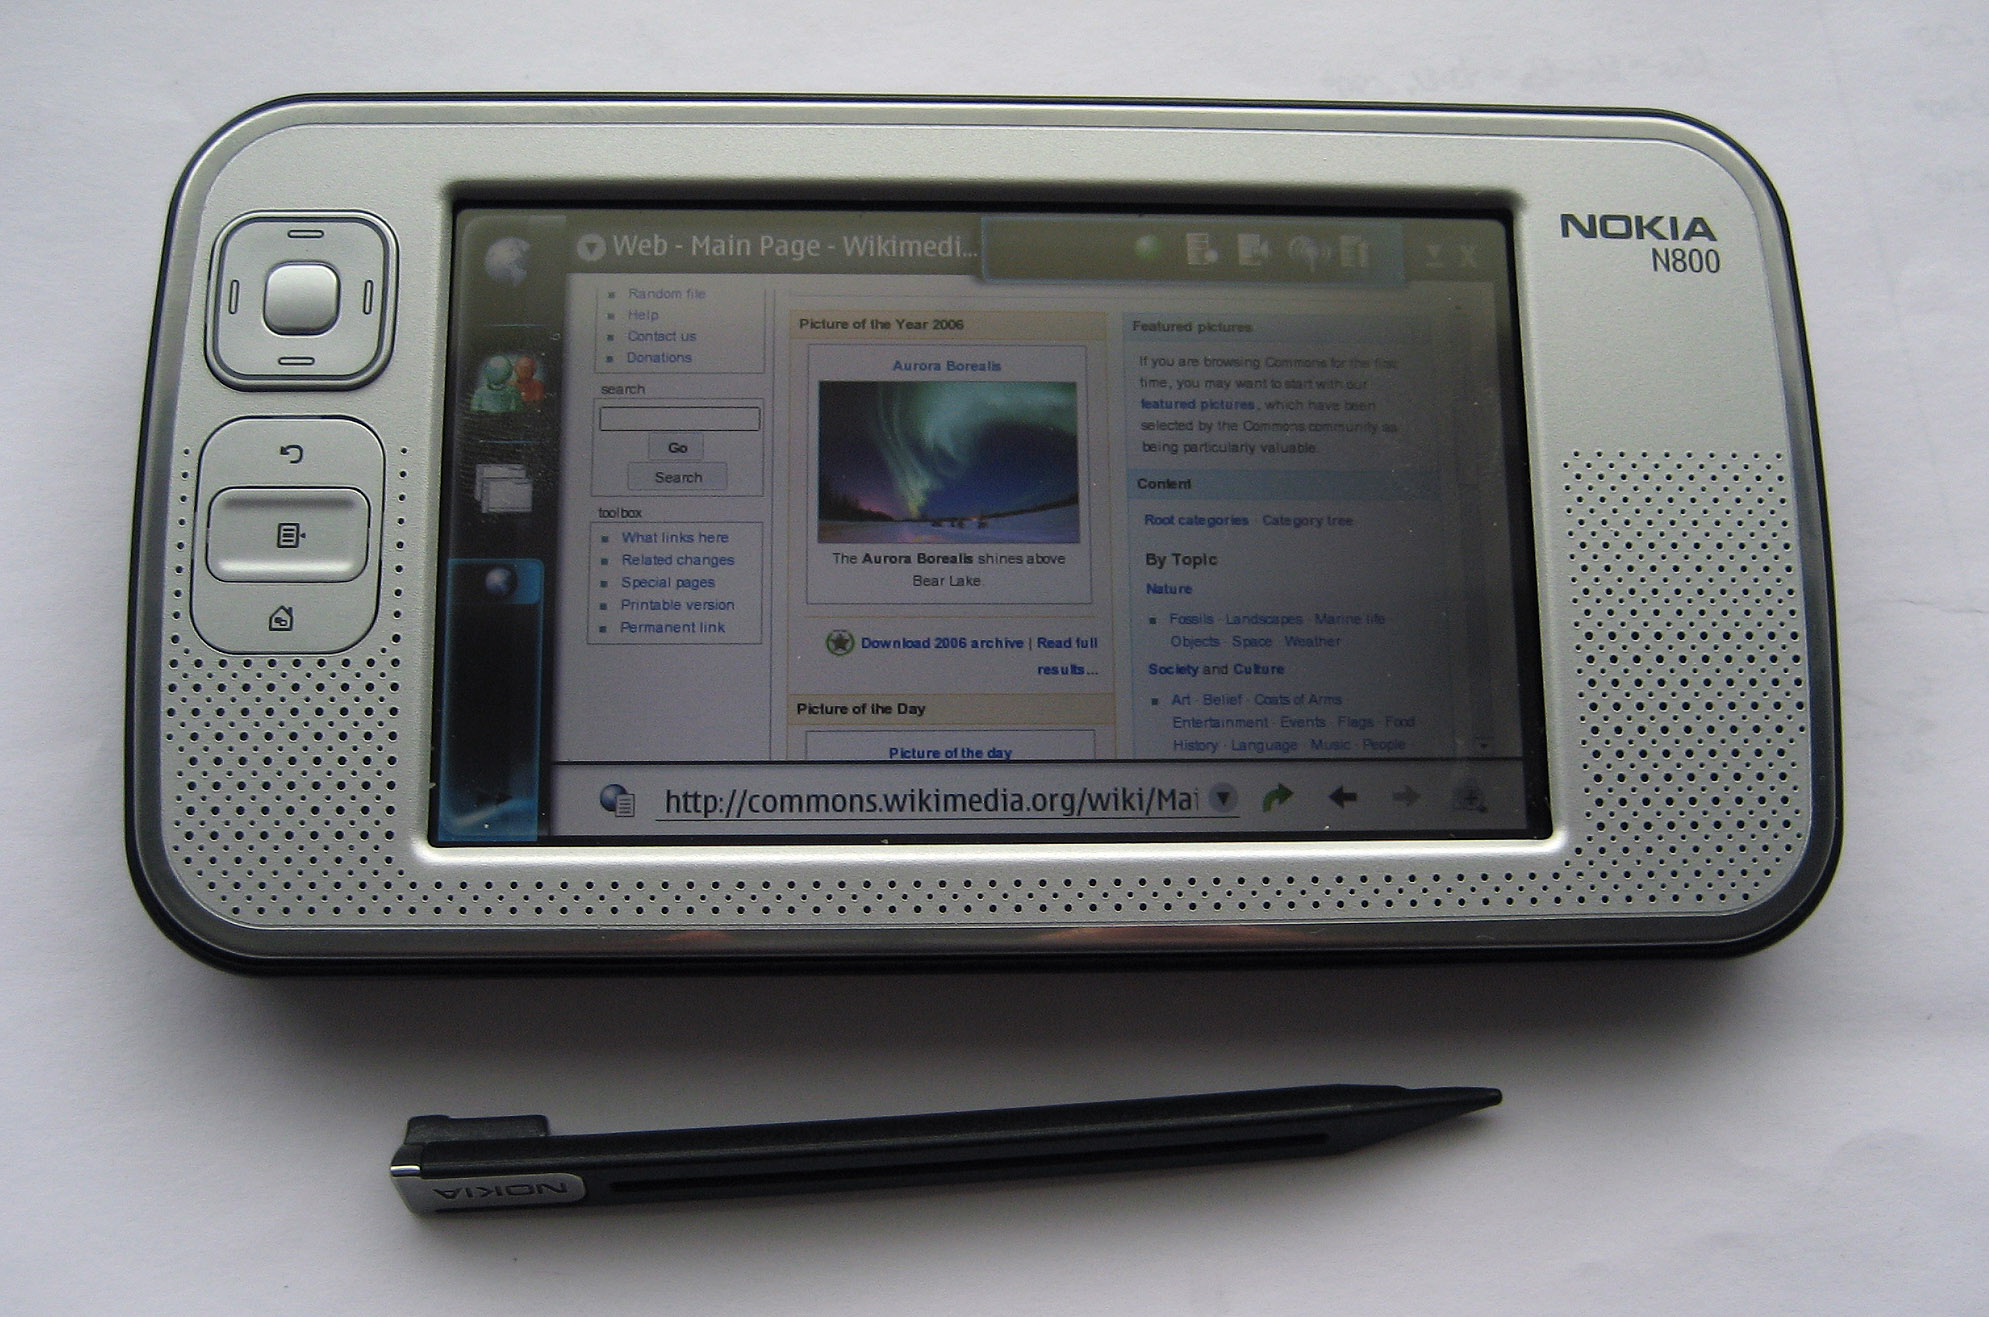 Nokia N800   Wikipedia  the free encyclopedia